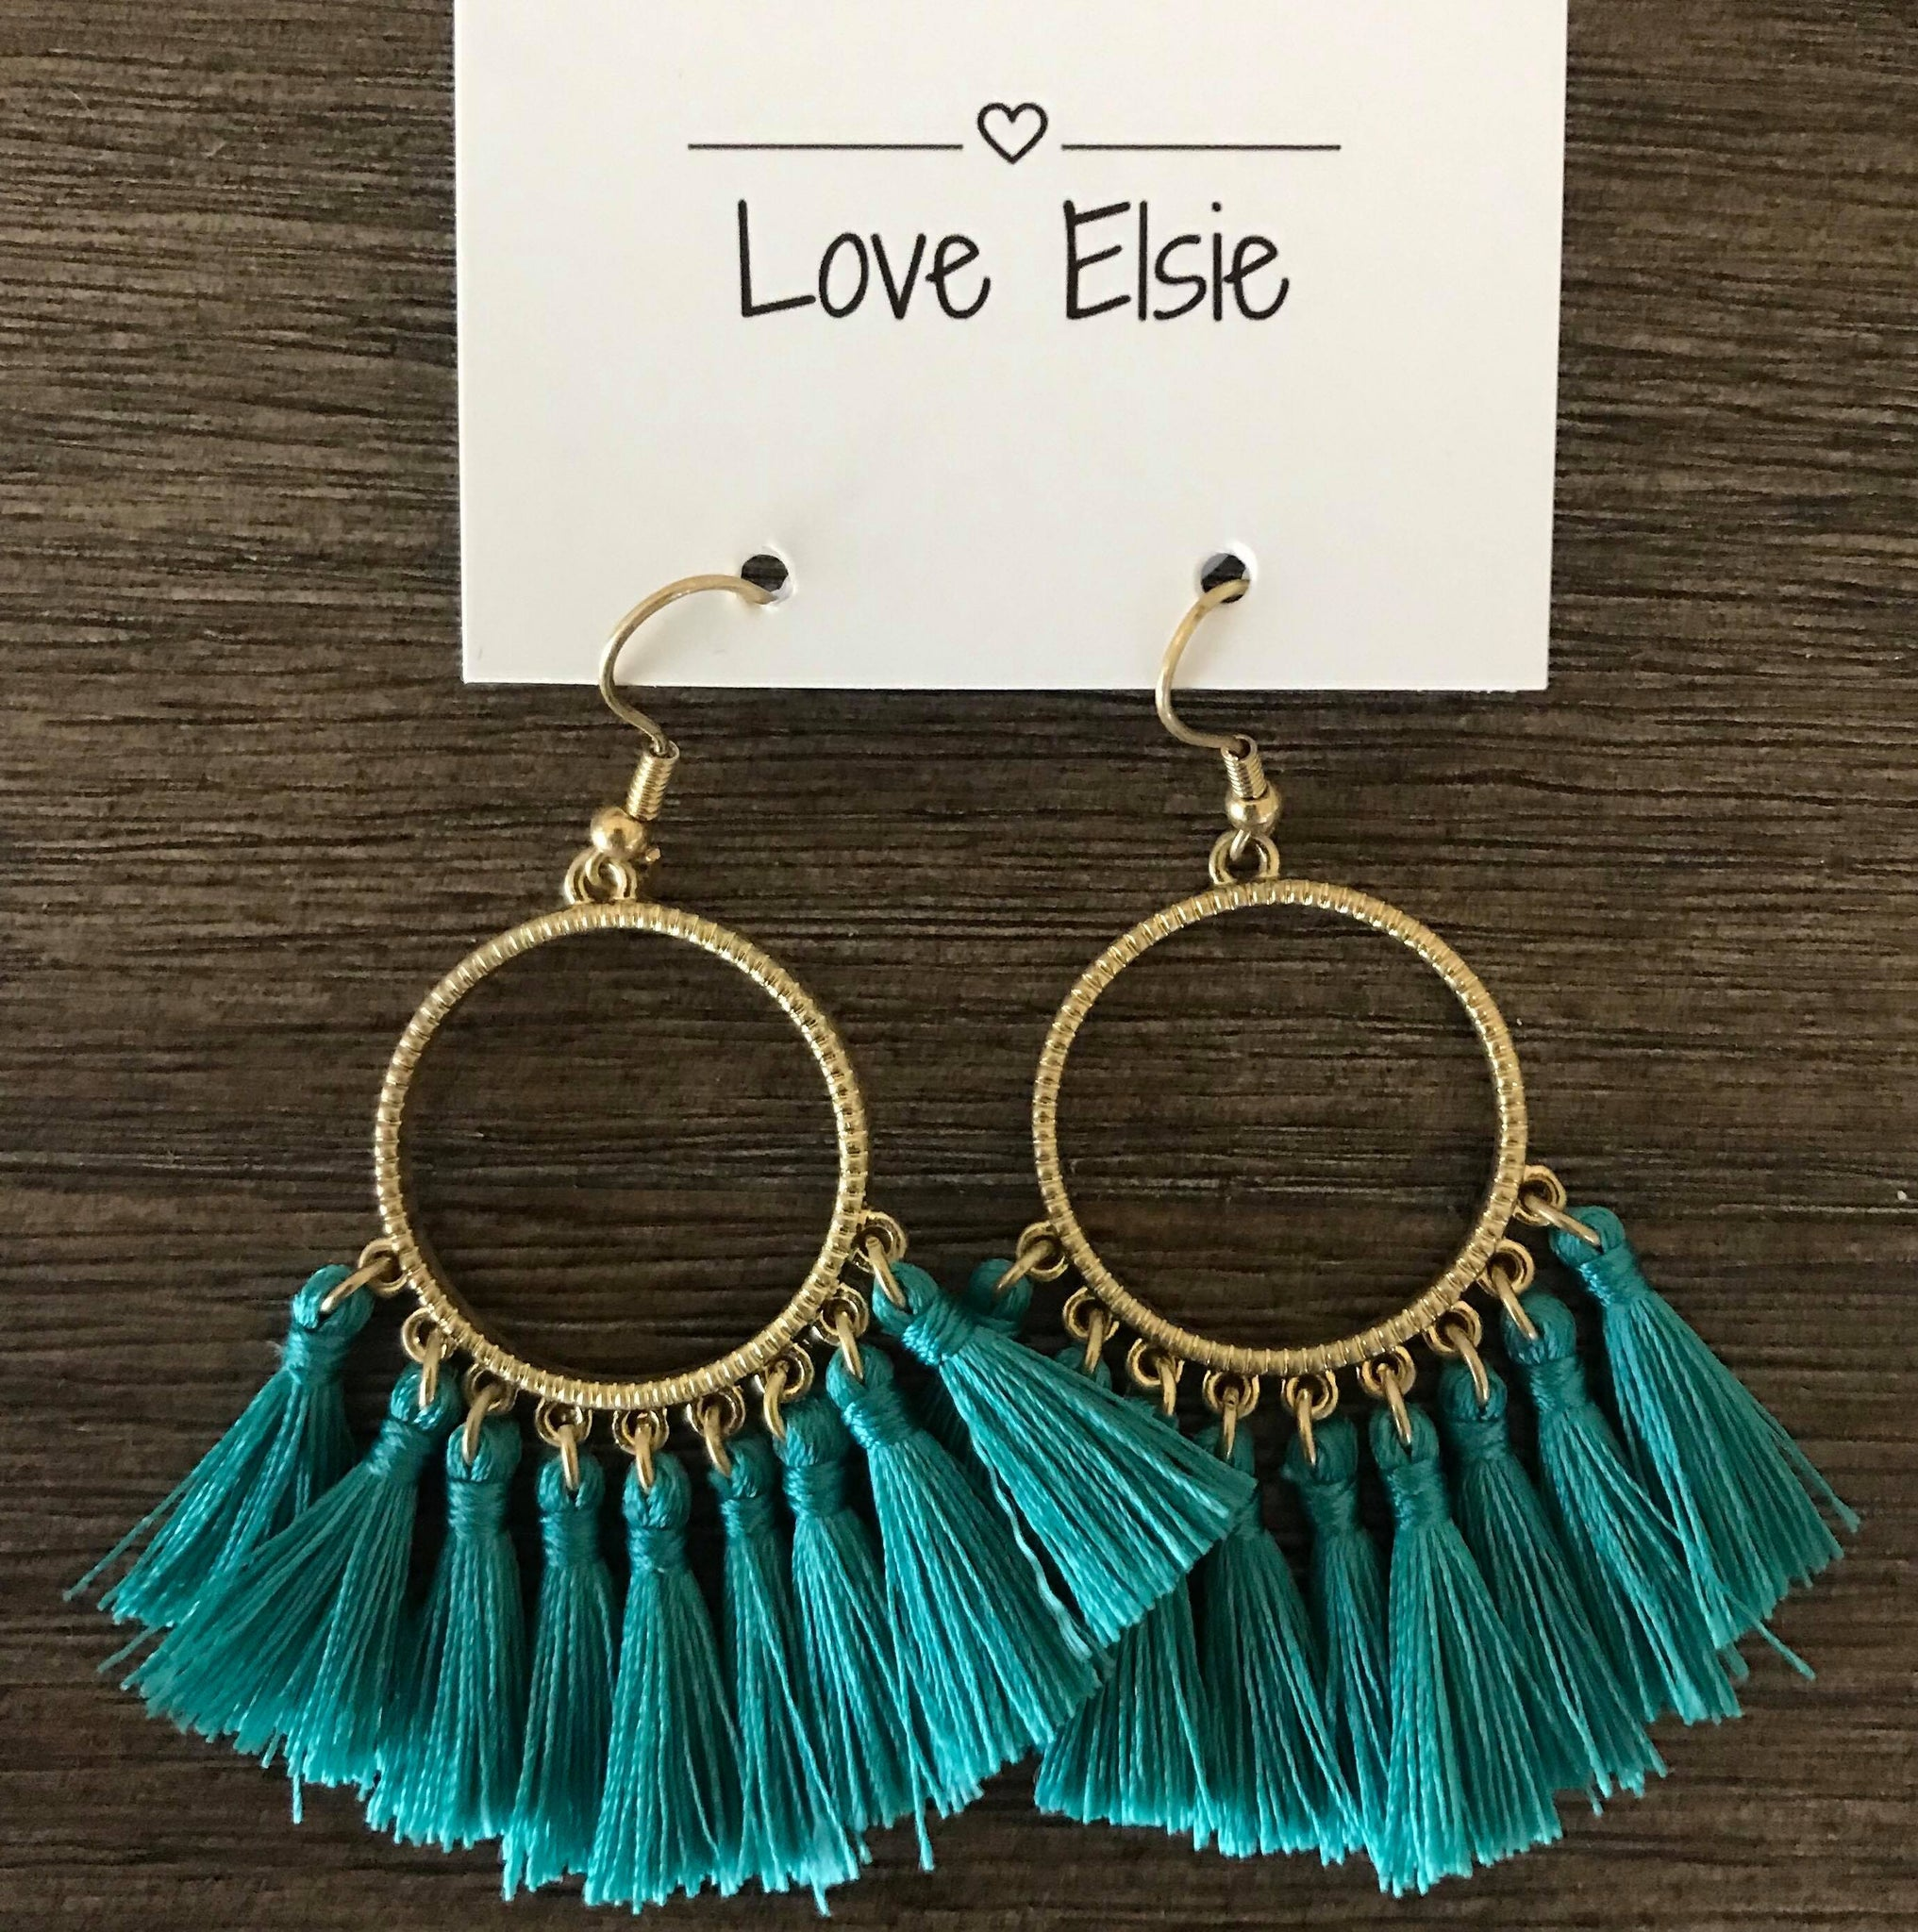 Tia - Teal Tassel Earrings - Small